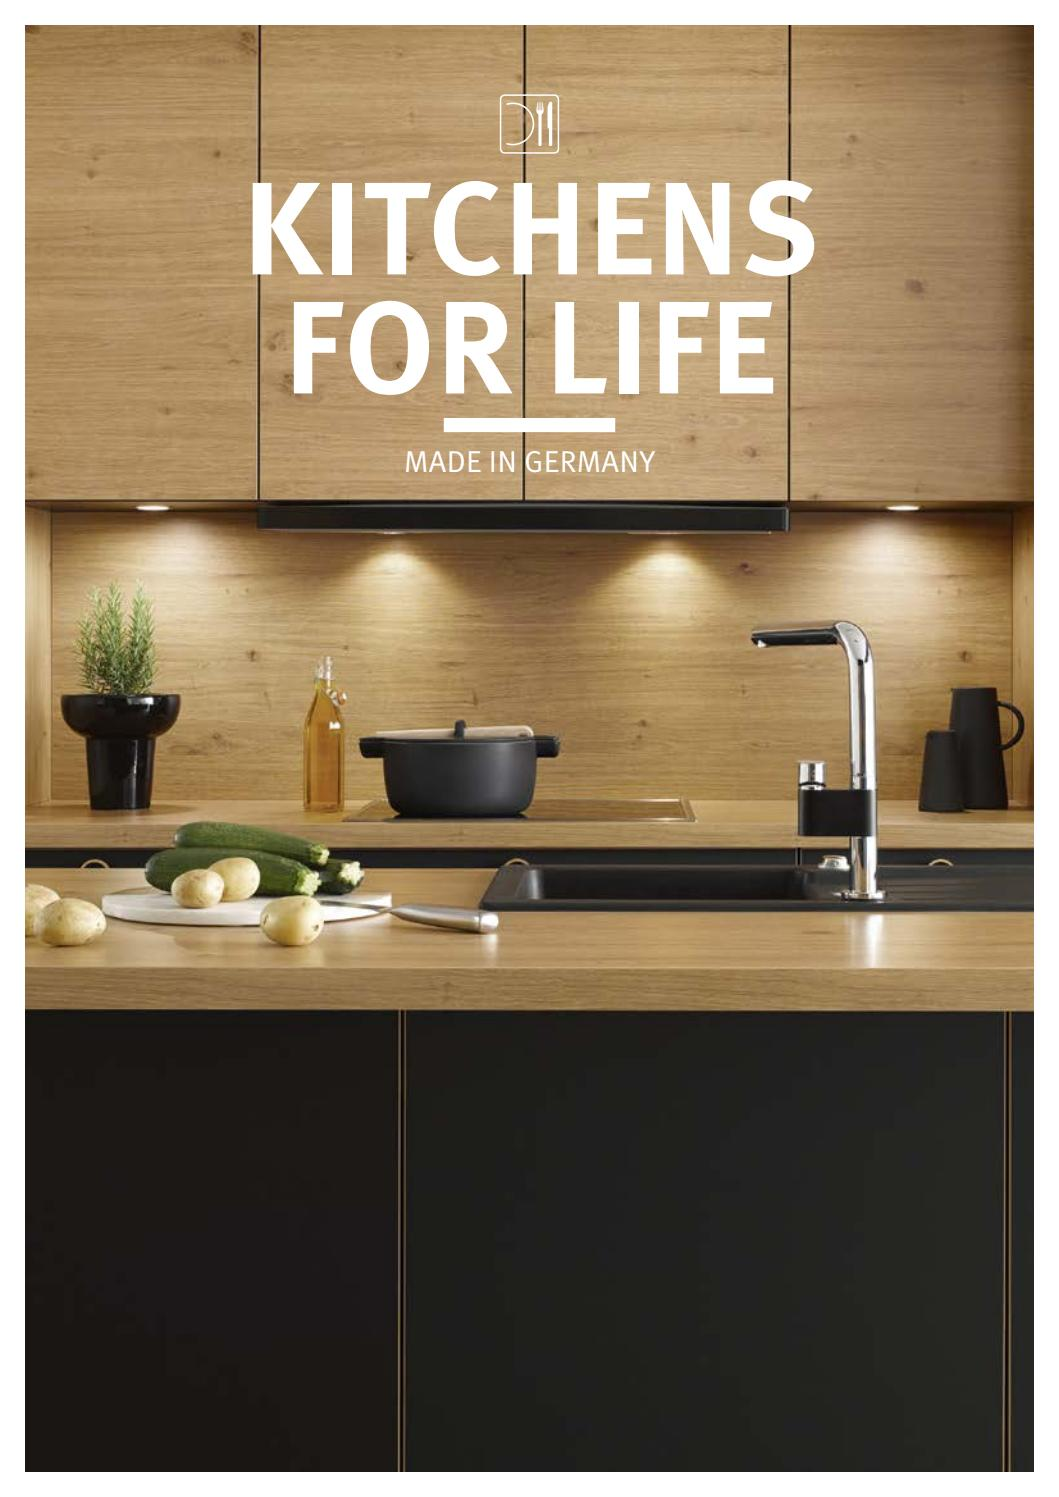 KITCHENS FOR LIFE by nldm - issuu